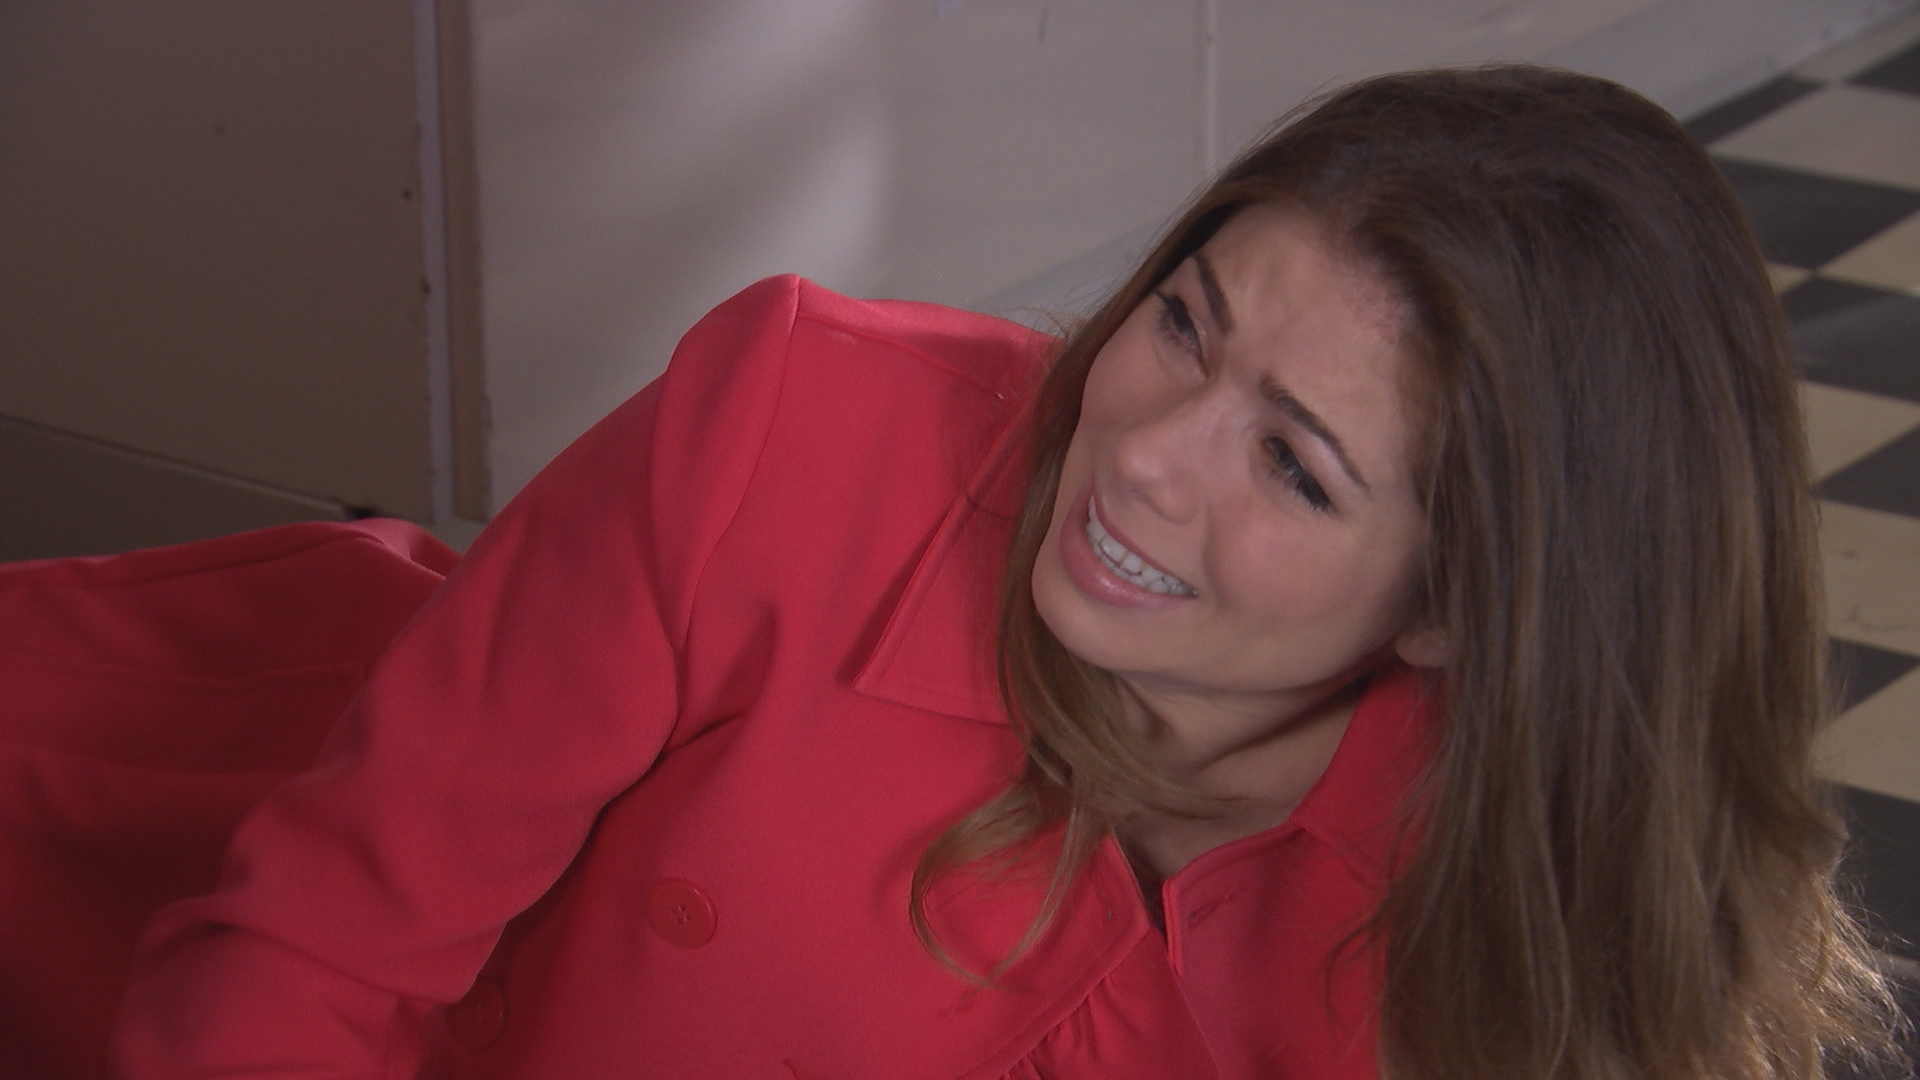 Hollyoaks spoilers: What is wrong with Maxine and what is Munchausen Syndrome?